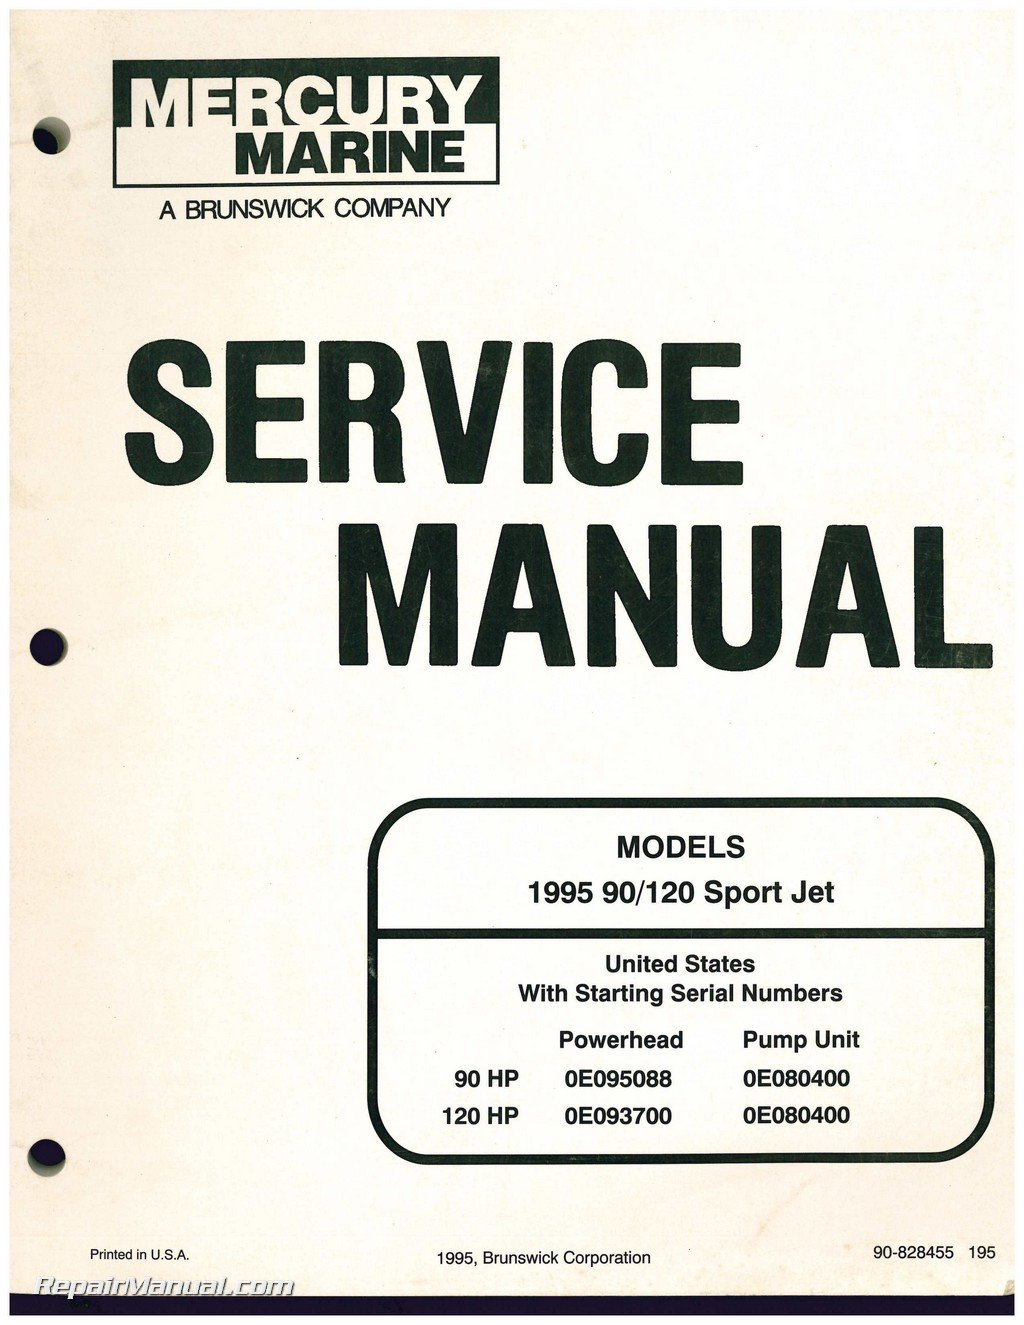 90-828455 Used 1995 Mercury 90/120 Sport Jet Engine Service Manual:  Manufacturer: Amazon.com: Books